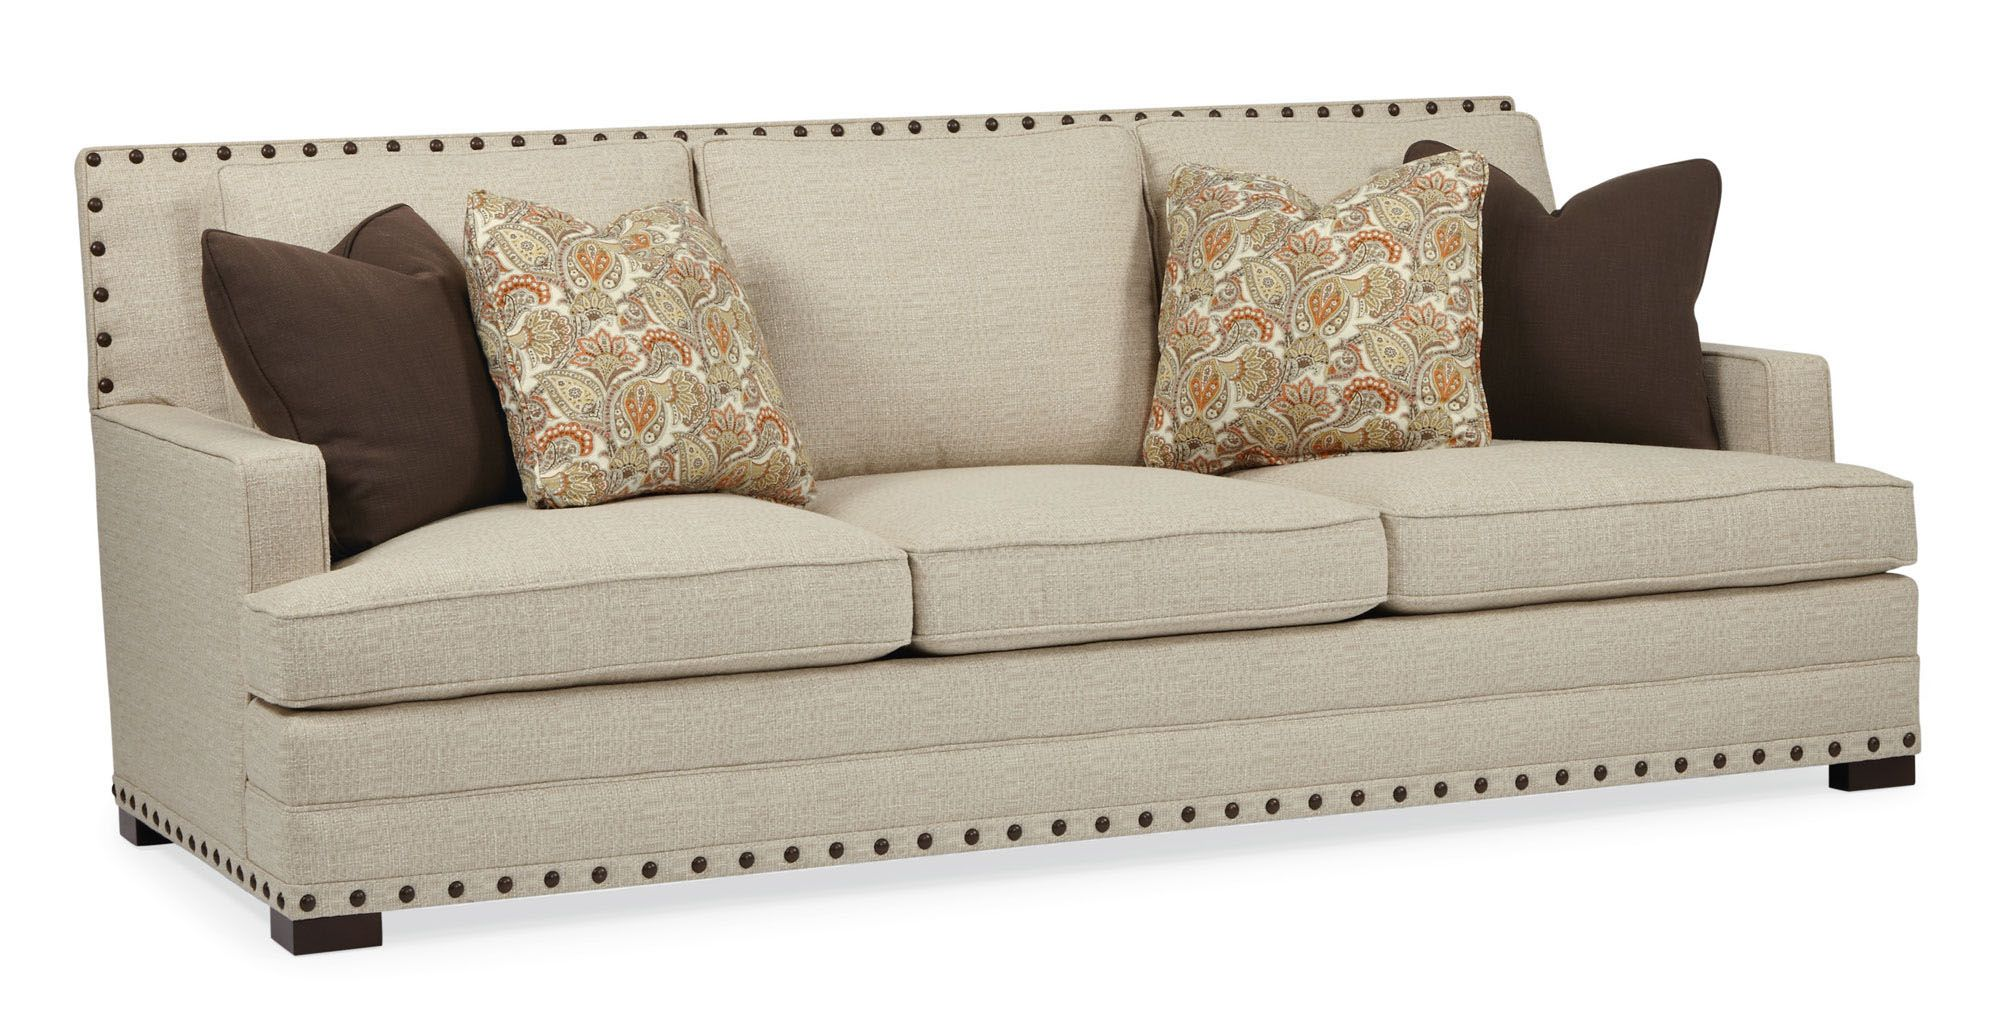 bernhardt sofa leather and fabric thomasville bridges 2 0 table cantor quick ship